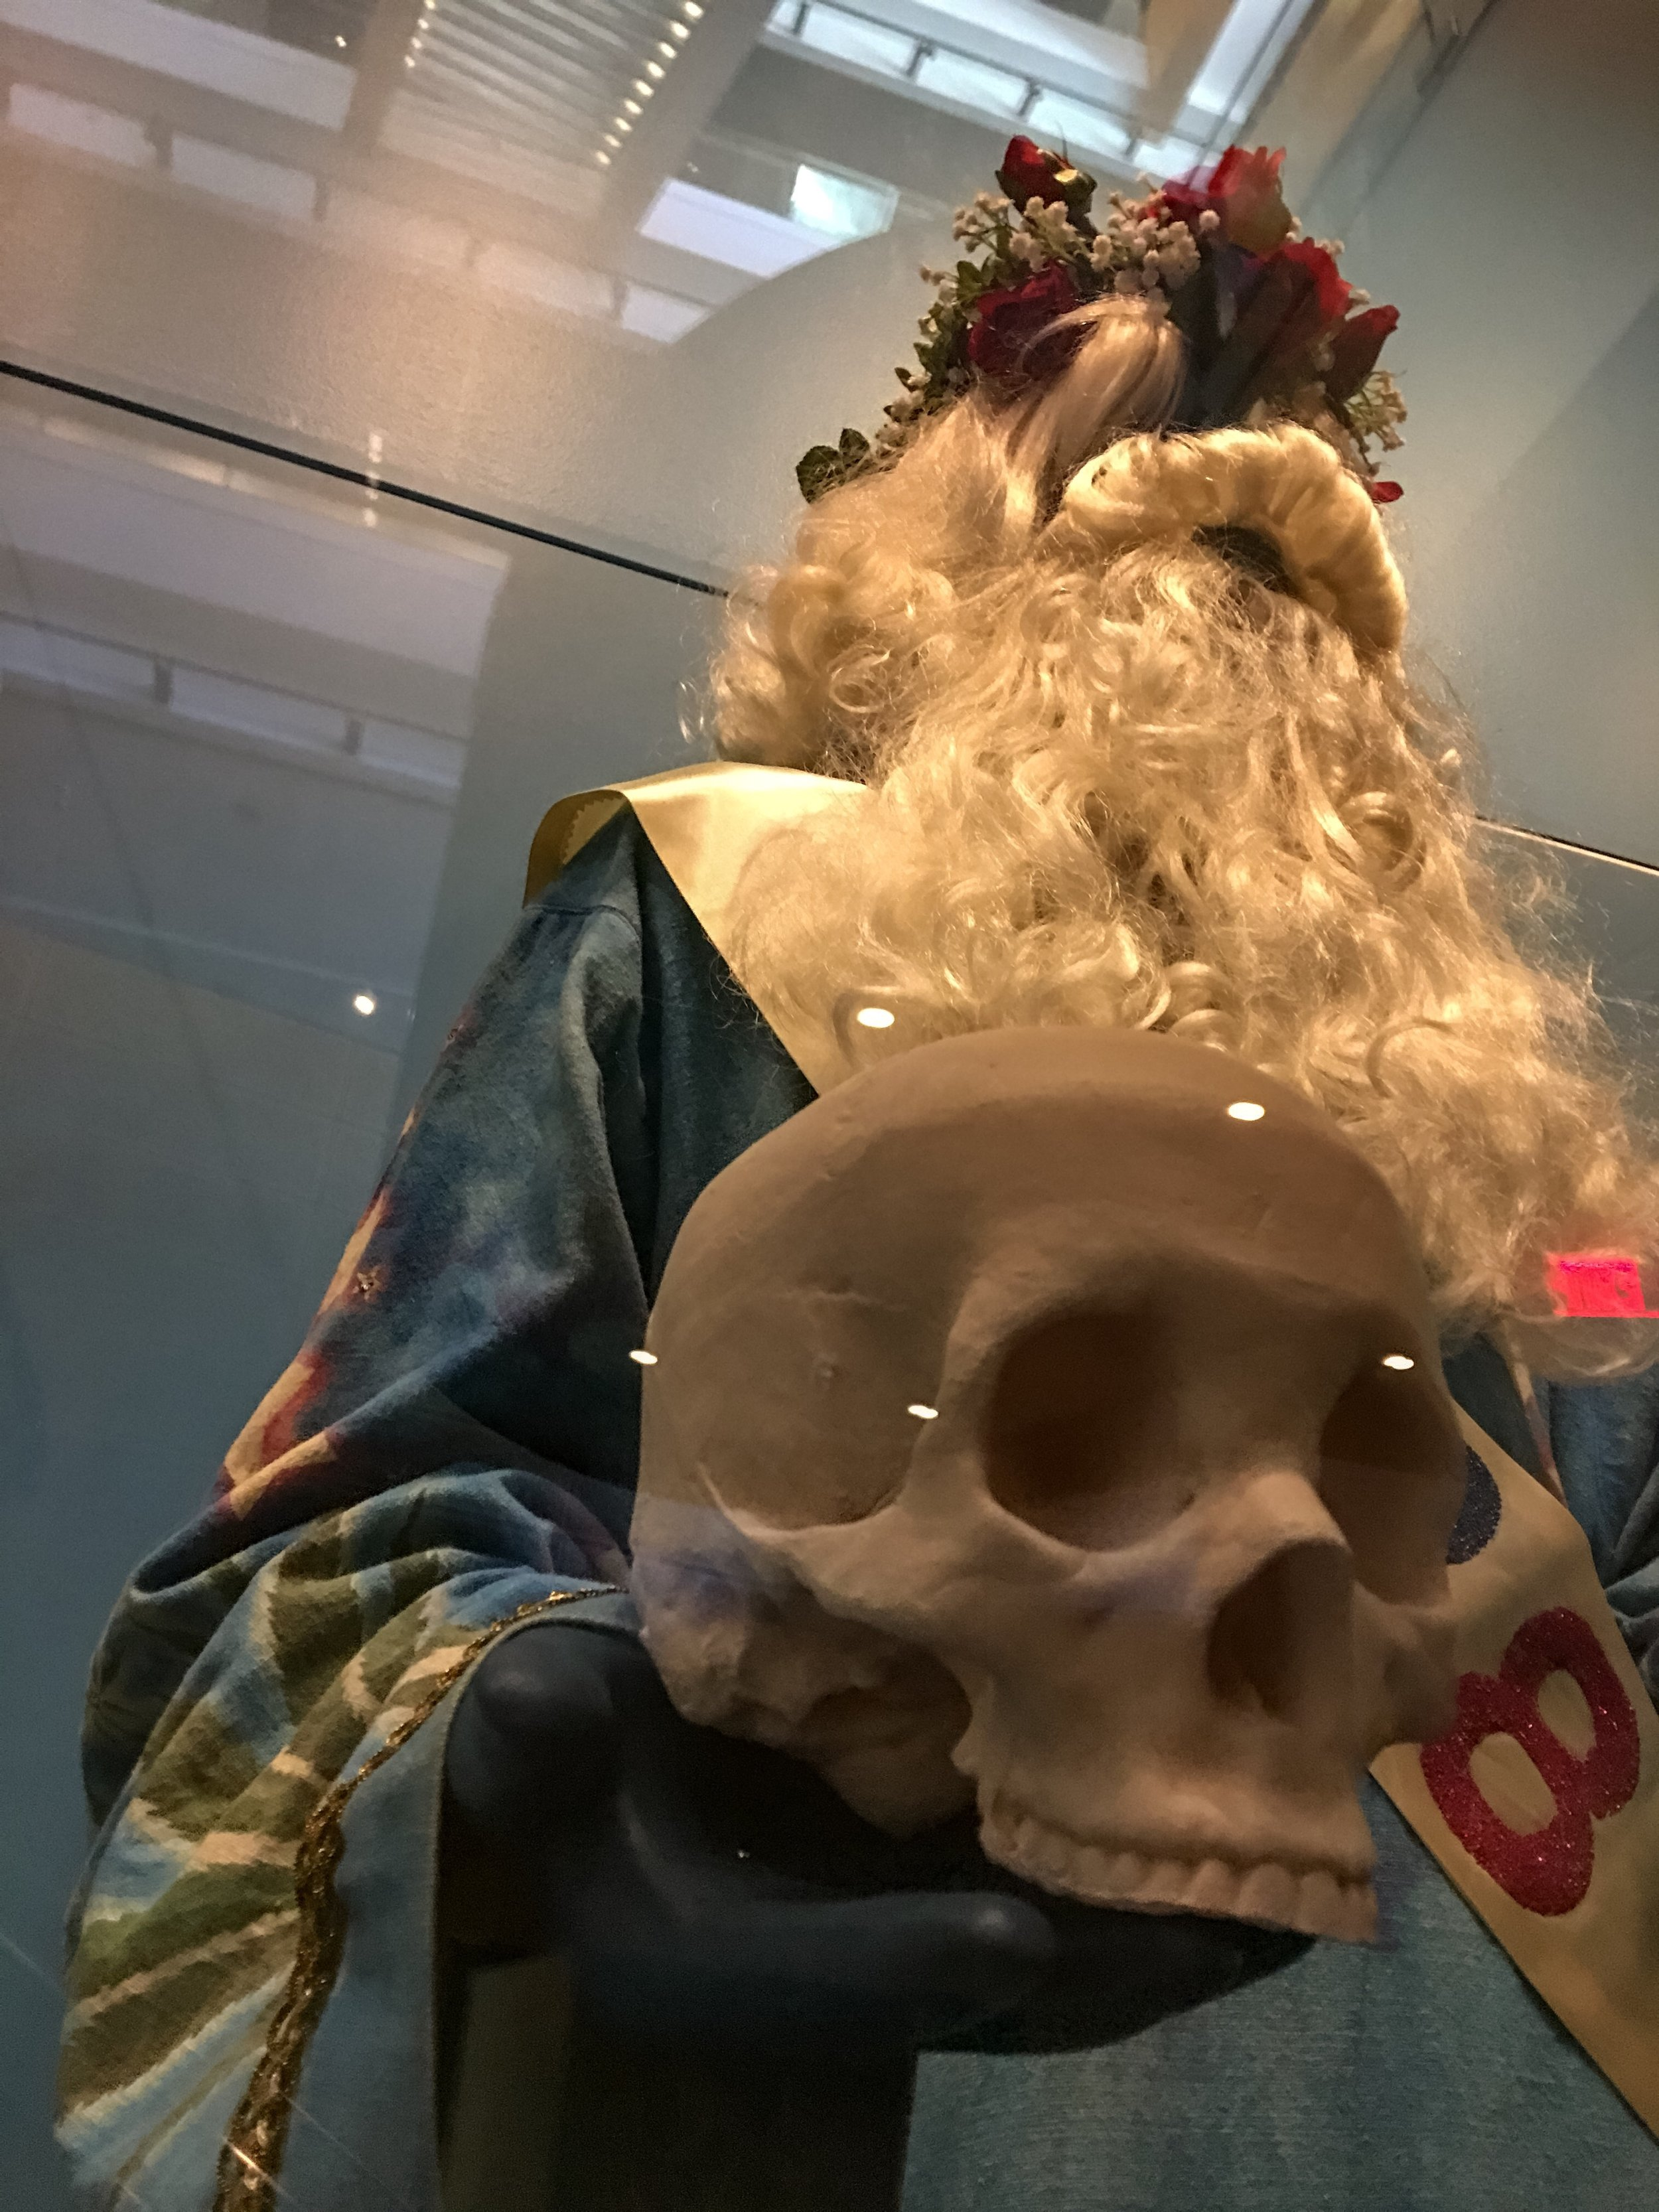 One of the costumes worn by Bill Graham during the countdown and celebration at the Grateful Dead's annual New Year's Eve concerts.